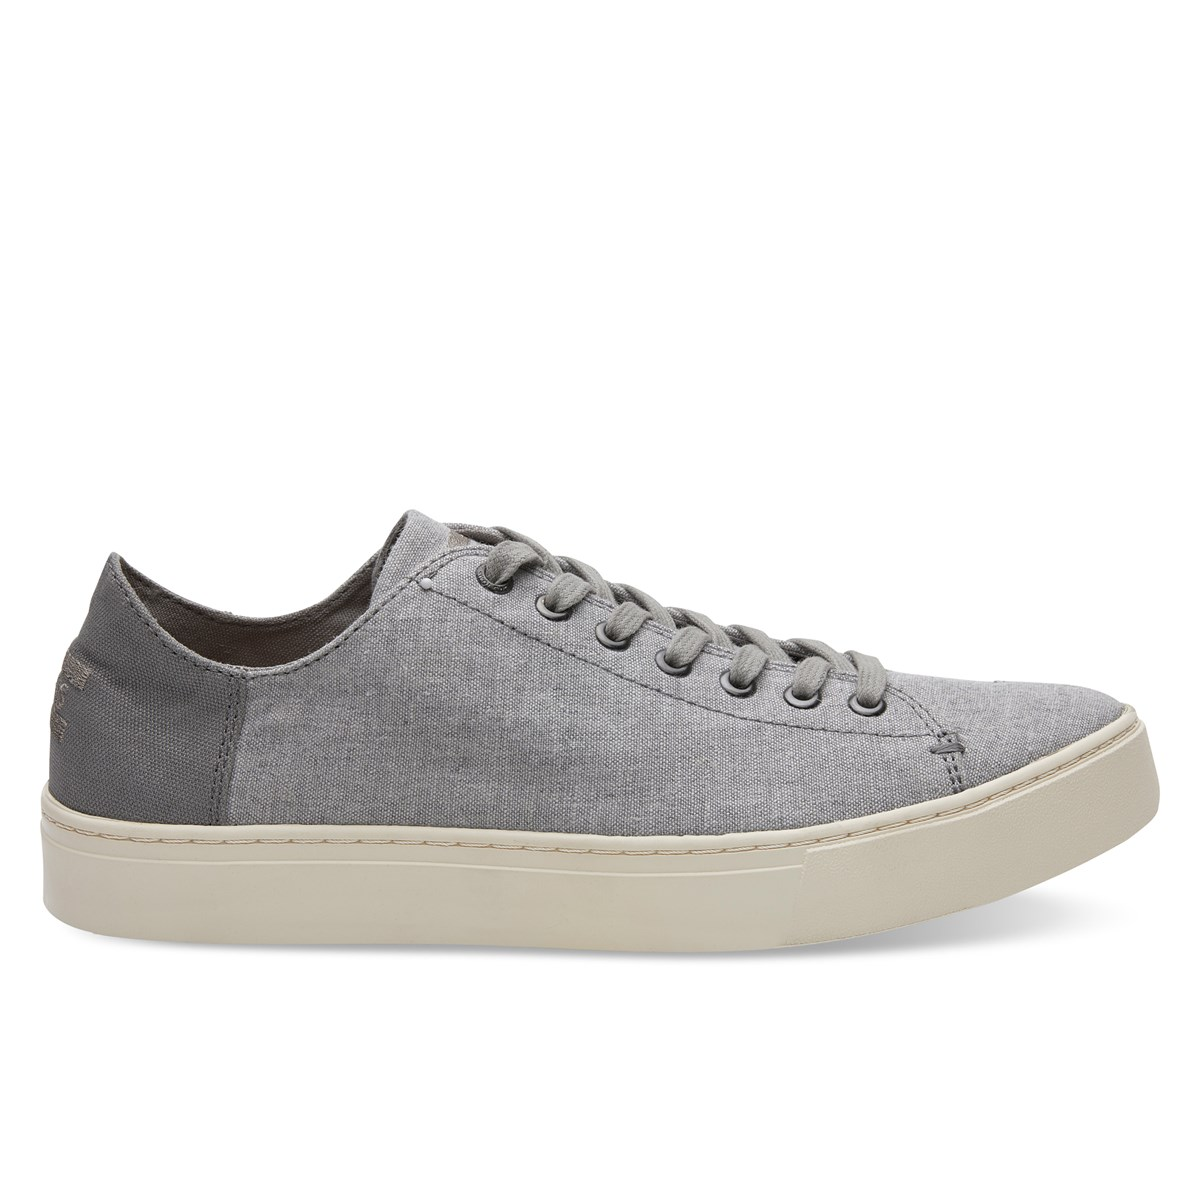 Men's Lenox Chambray Drizzle Grey Sneaker